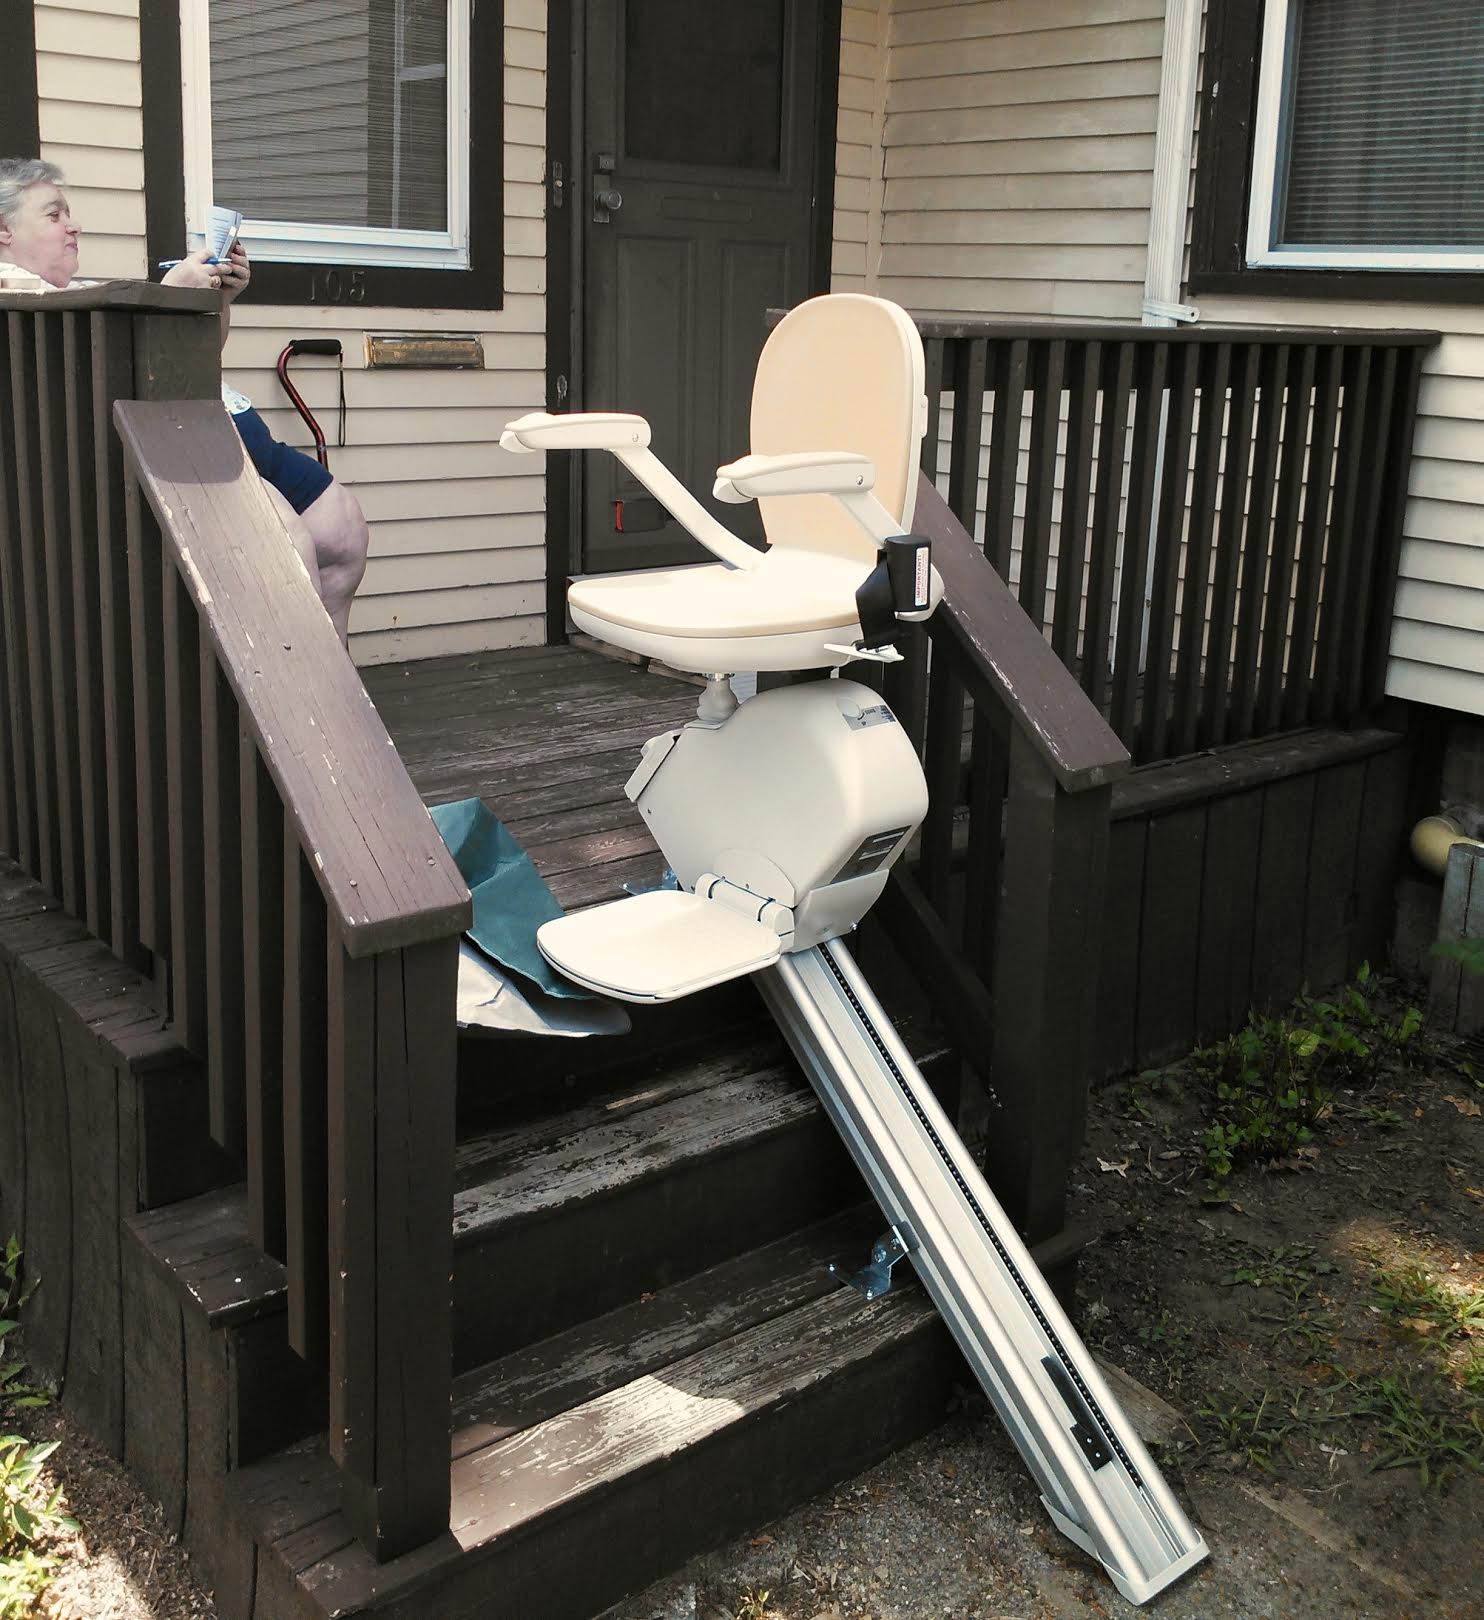 chair cover rentals boston ma lightest fishing on the market outdoor stairlift walk in bath and new